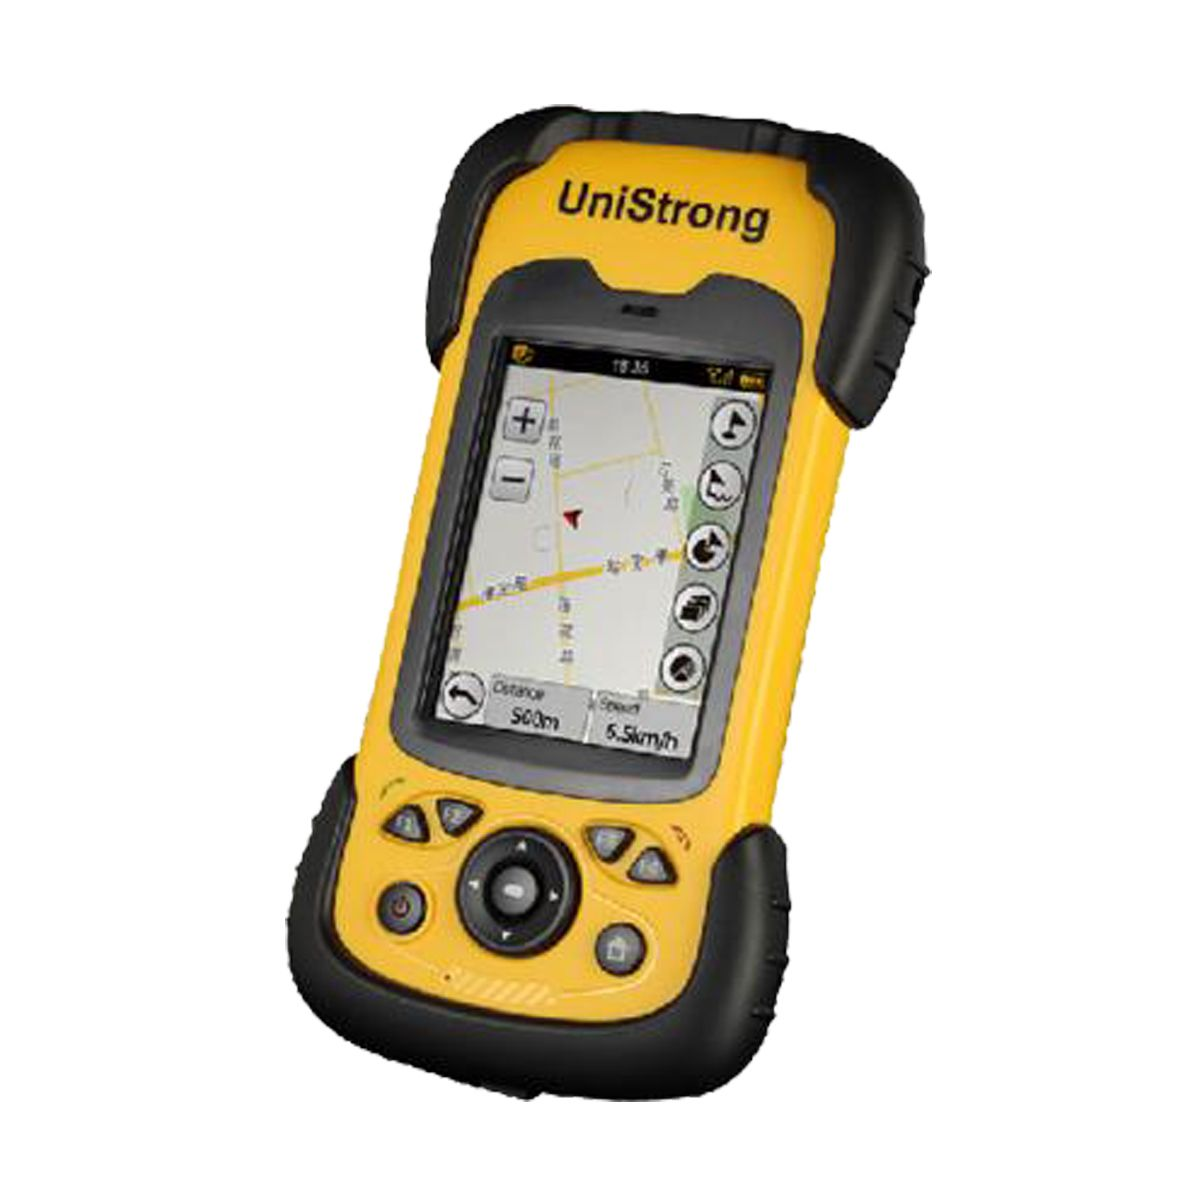 ODIN All-in-One Field Data Collection GPS Device